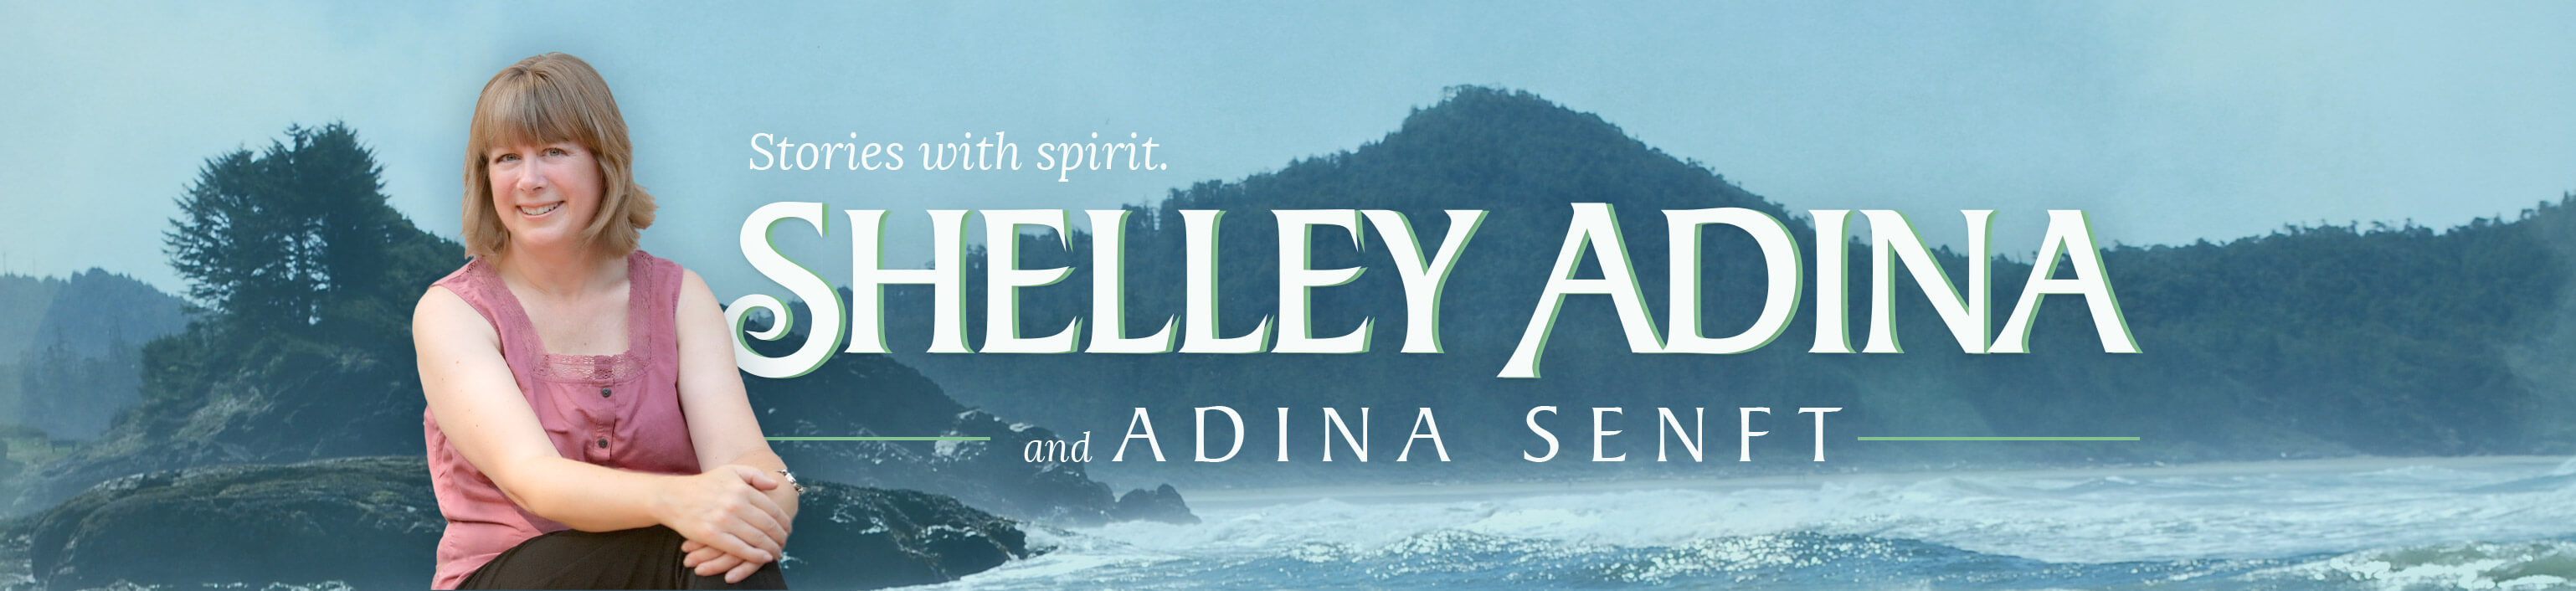 Stories with Spirit - Author Shelley Adina